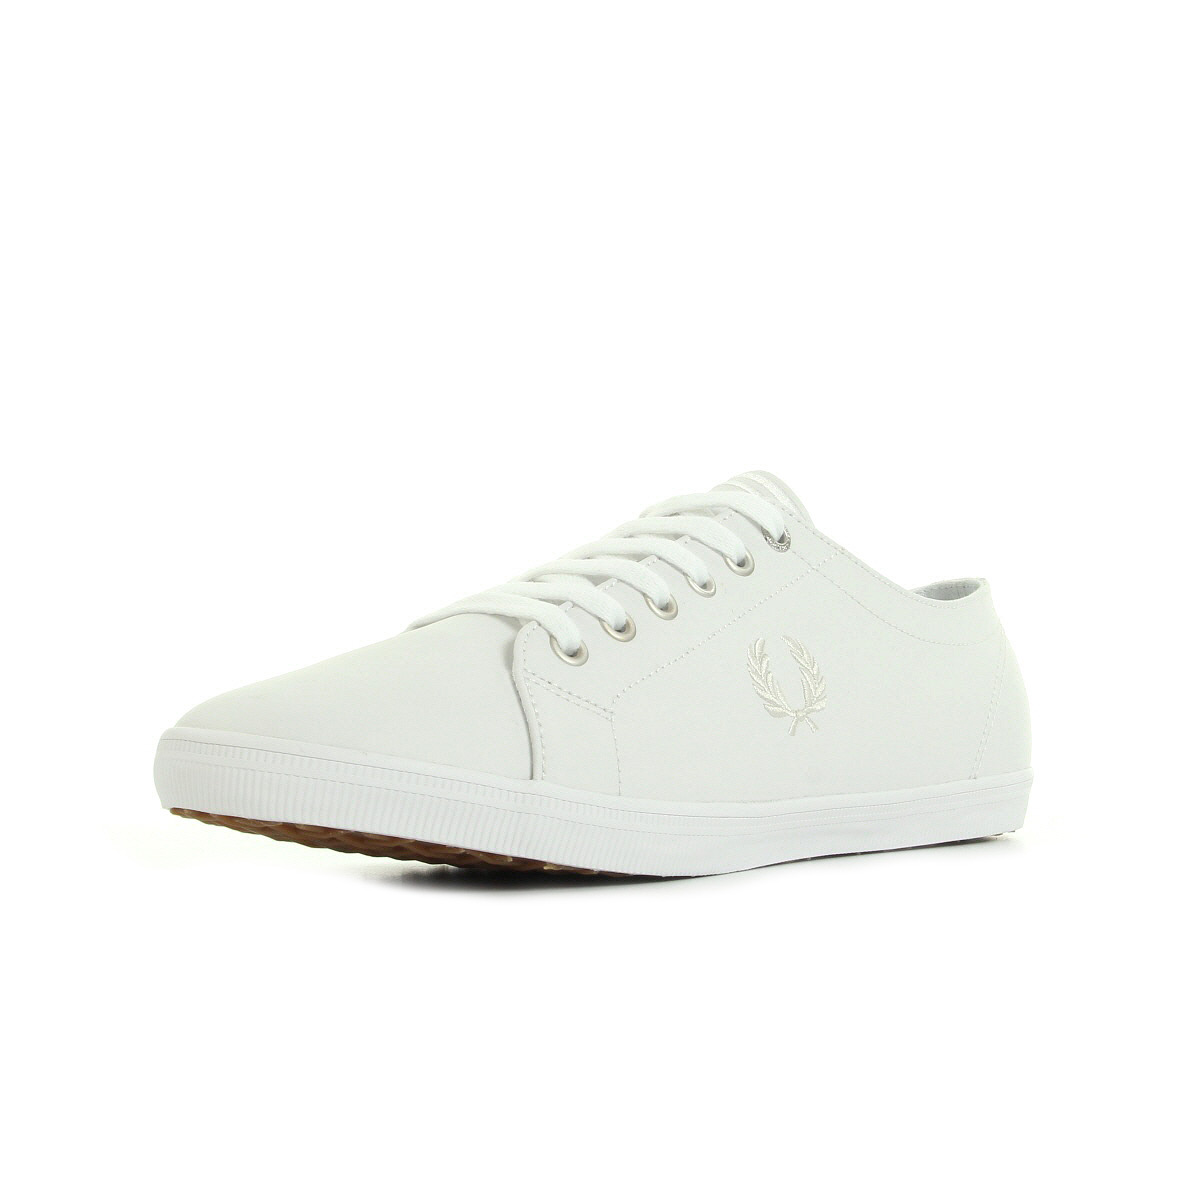 homme Chaussures Leather Baskets taille Kingston Perry Fred White vn8Oq6